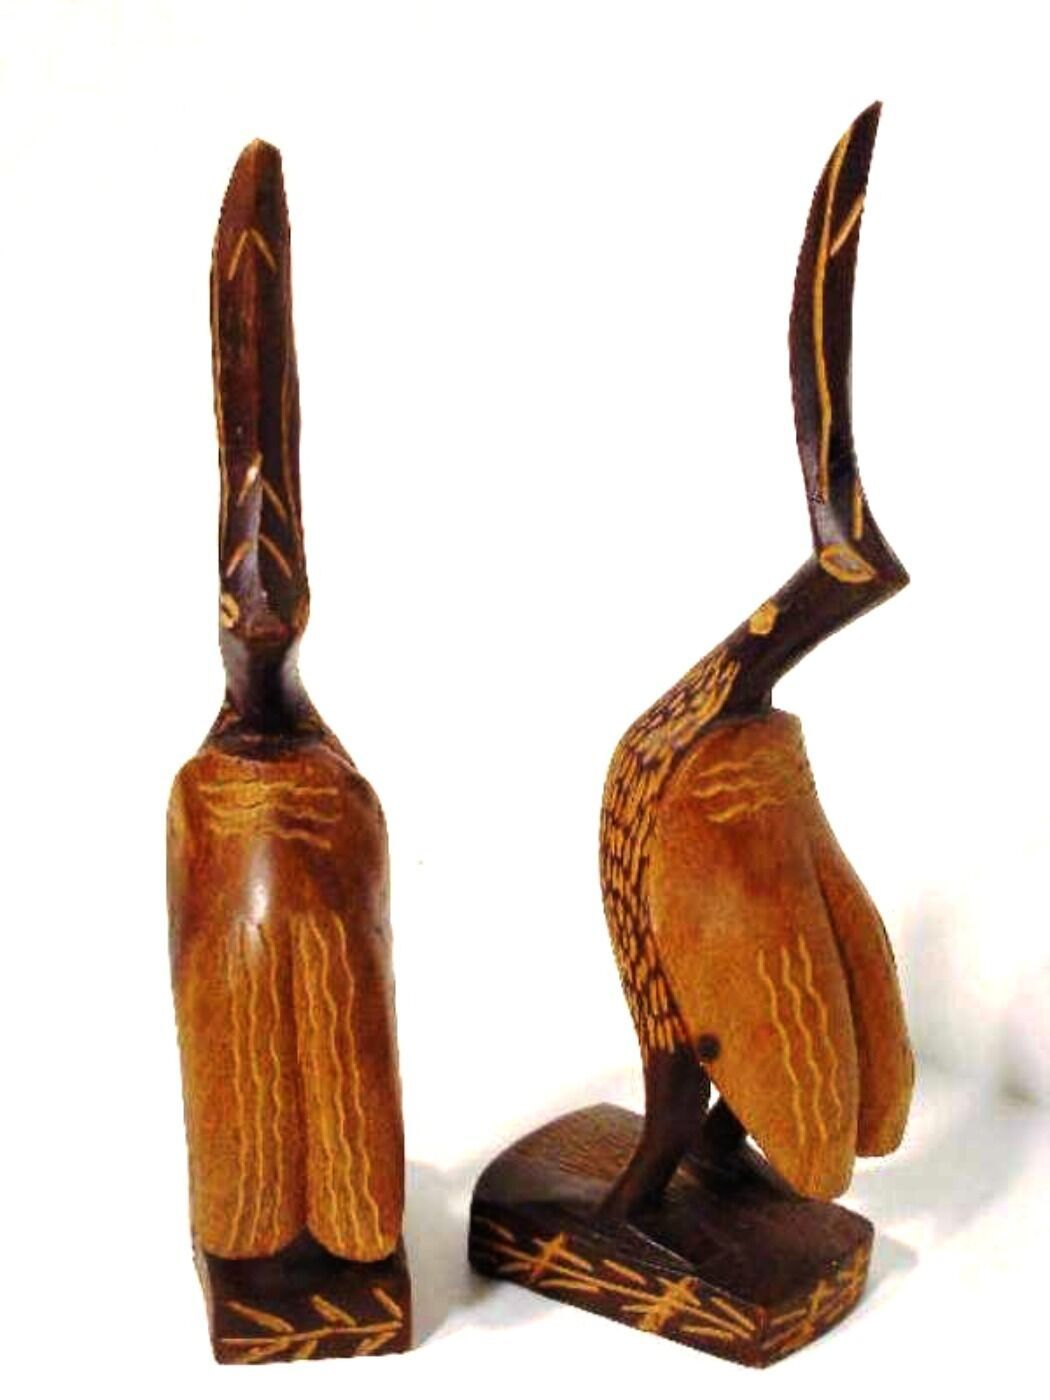 Pelicans Two Wooden Bird Figurines Hand Carved Sculptures 7.5 inches Tall